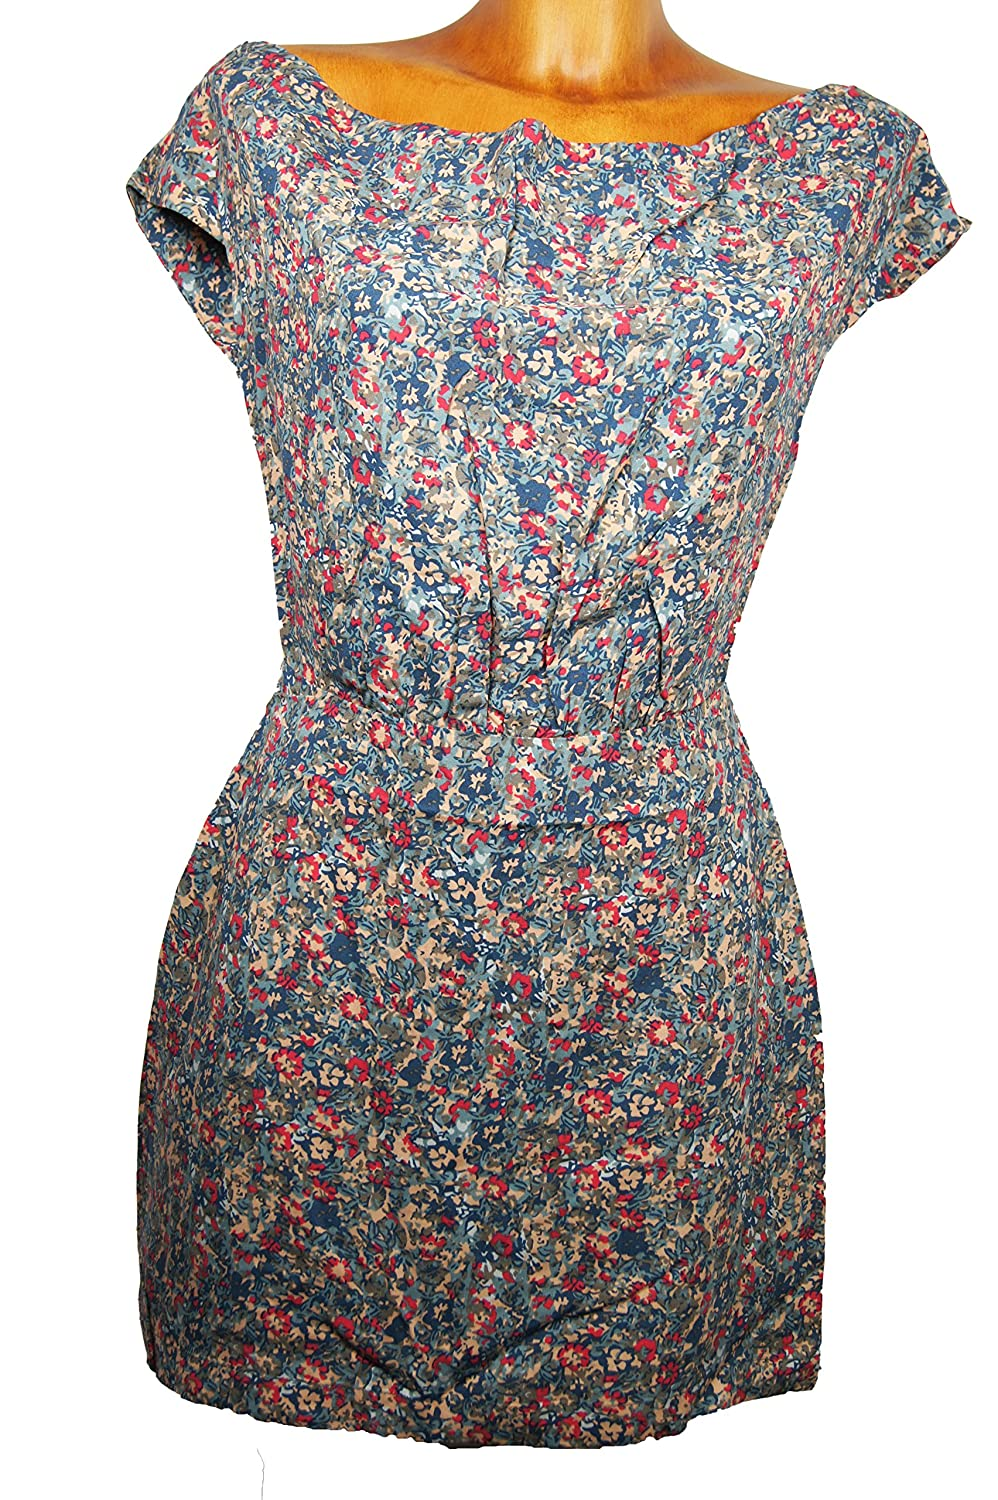 'Lifetime Collective Women's Claudia Floral Midi Dress, Multicoloured, available in various sizes